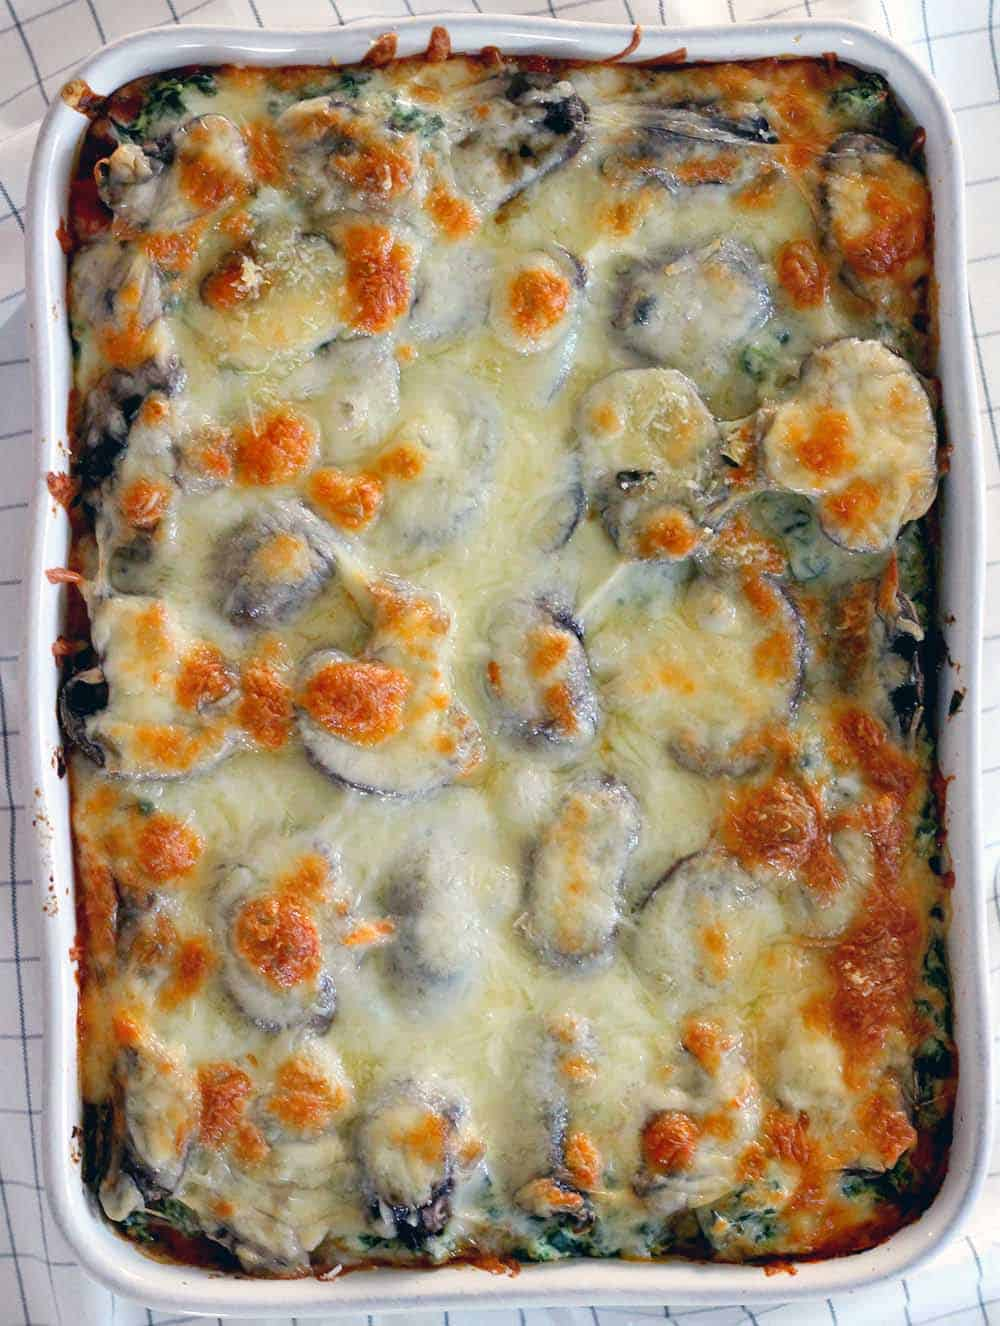 Casserole dish filled with lasagna, cropped in so lasagna fills the frame.